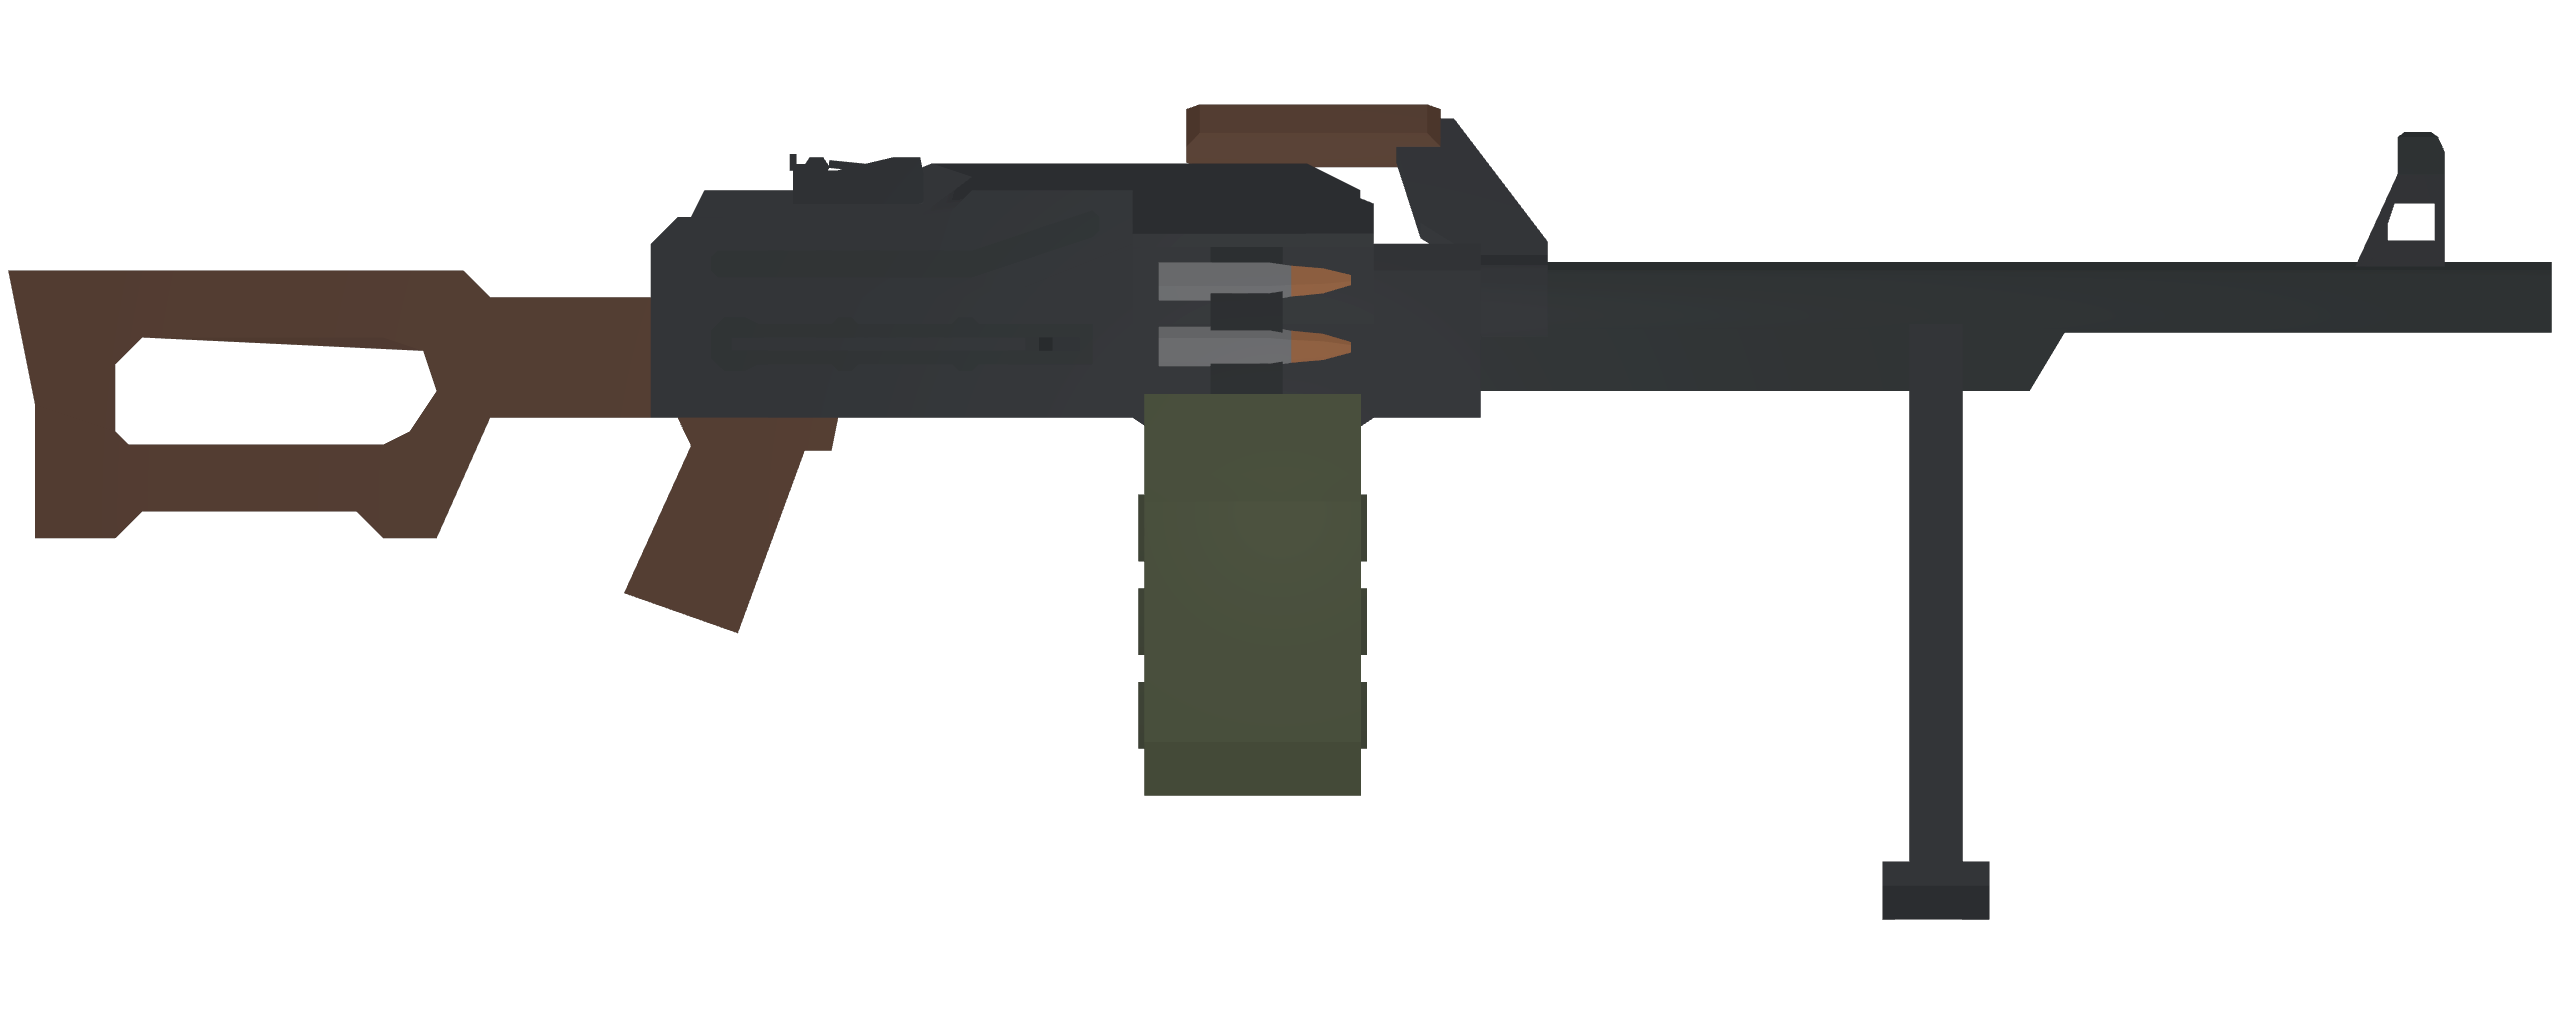 Unturned - All Weapons ID's for Uncreated Warfare Mods - Russian Weapons - 0B36FB6